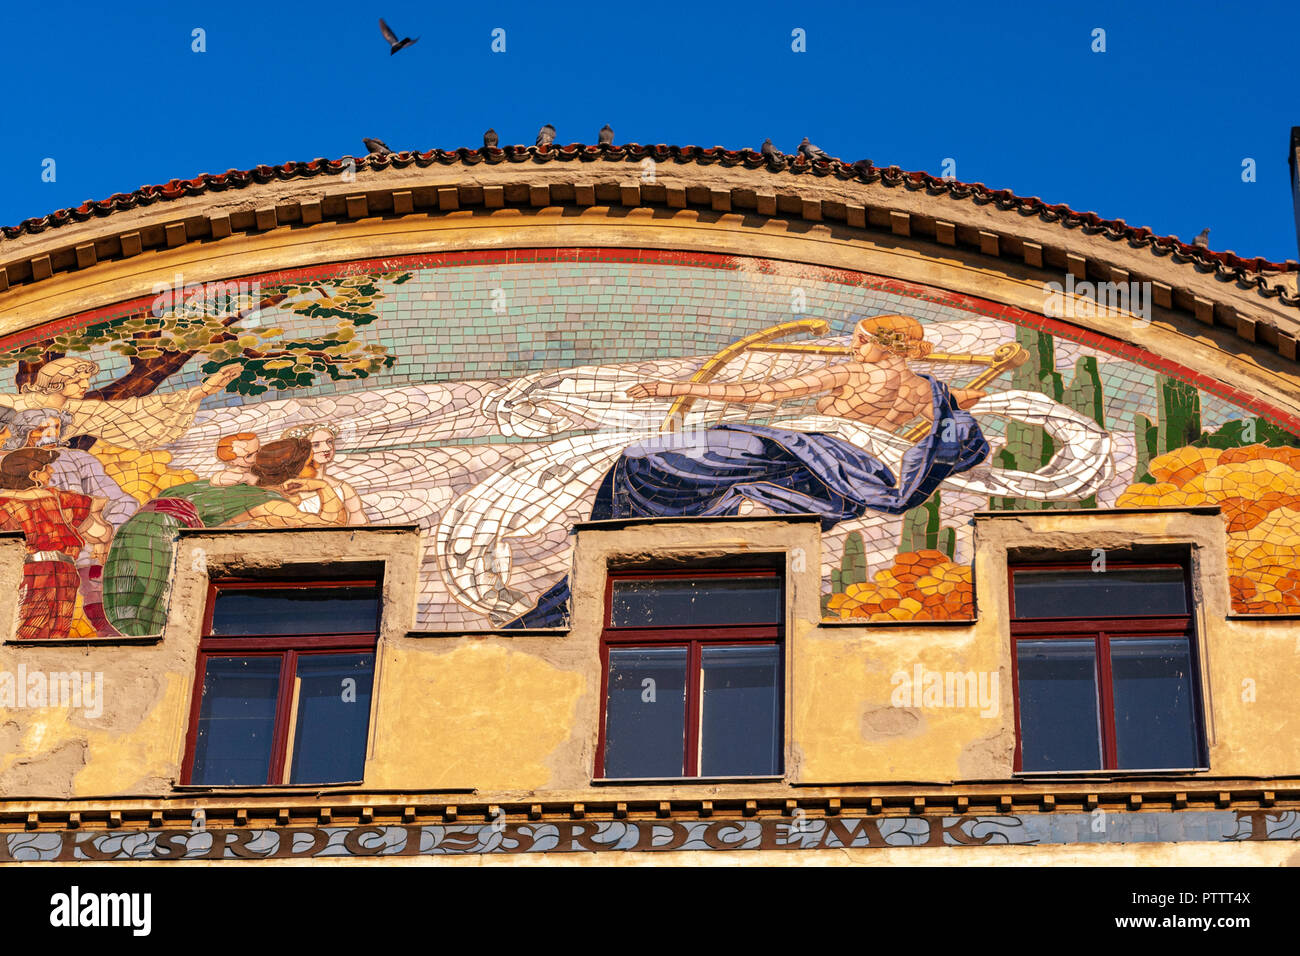 Musician tiles in the Art nouveau house on the right bank of the Vltava, Hlahol building in Masarykovo nábř. Prague, Czech Republic. - Stock Image